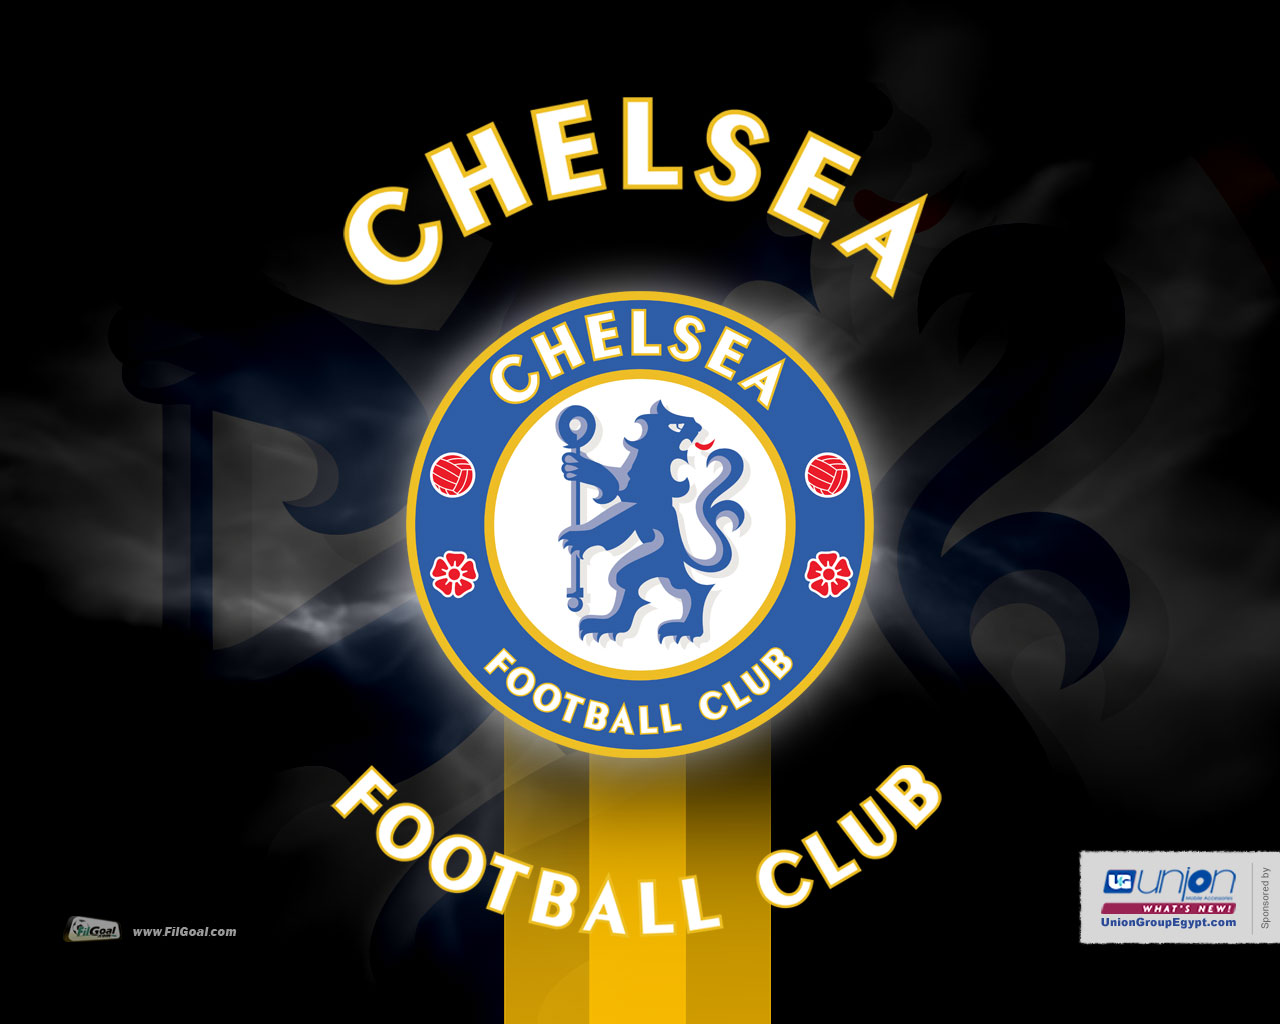 chelsea fc wallpapers for pc - photo #24